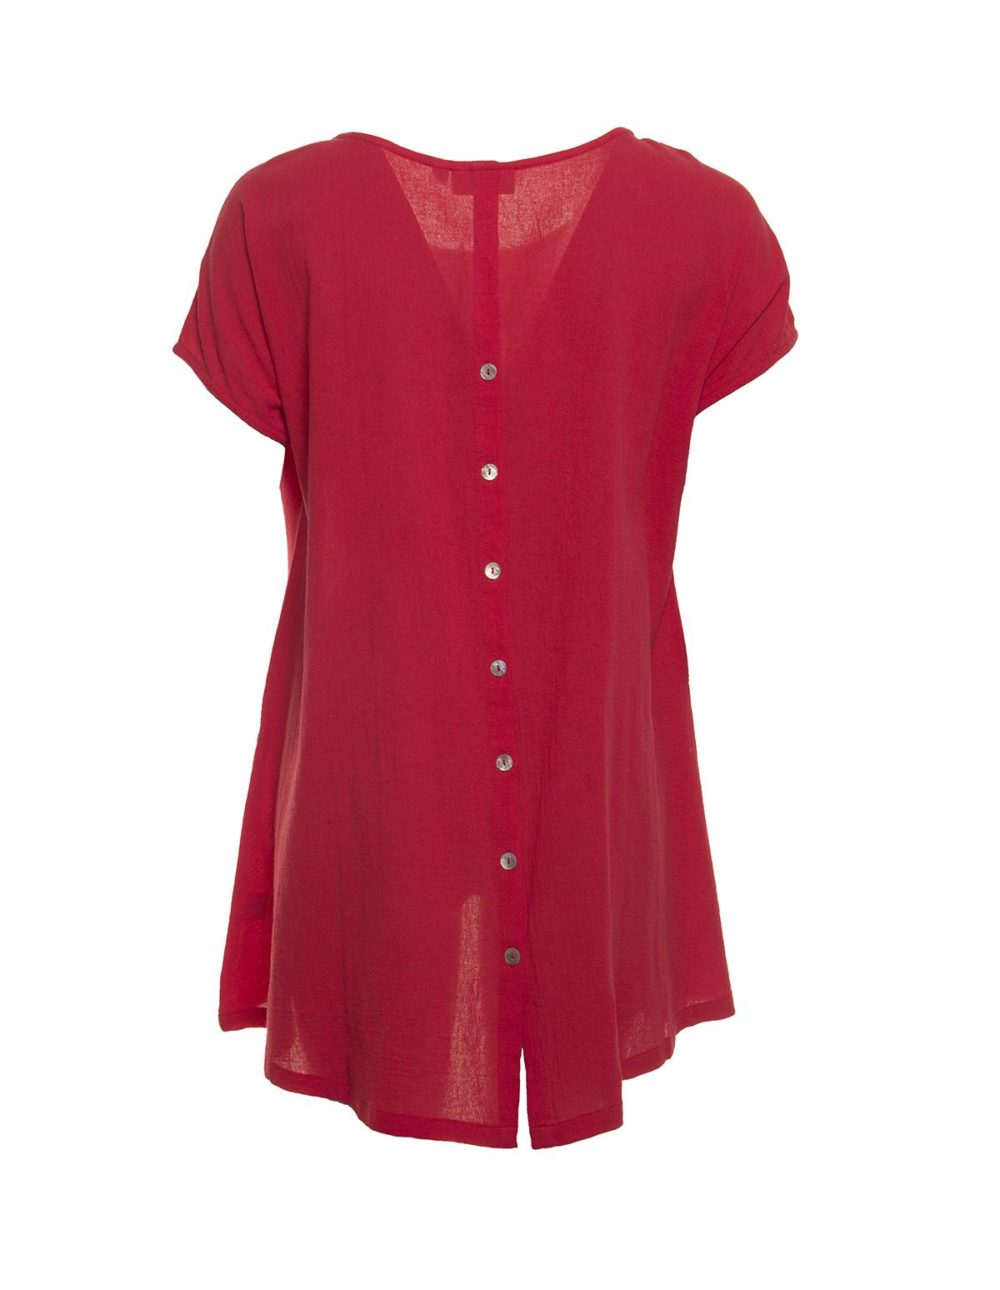 CSH-8005 Top Capri Clothing Katie Kerr Women's Clothing